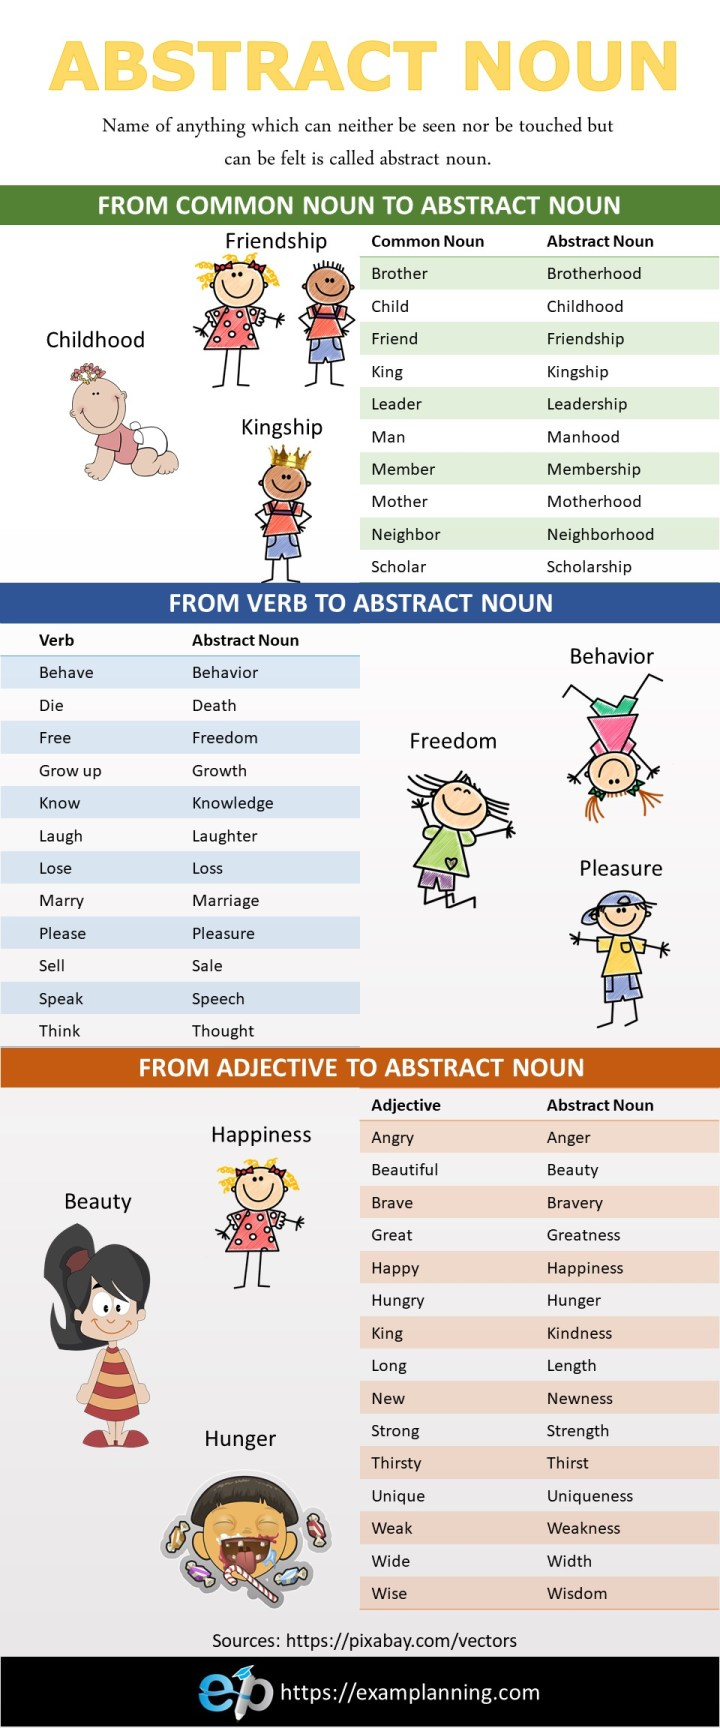 Make Abstract Nouns from Common Nouns, Verbs and Adjectives. List of Abstract Nouns